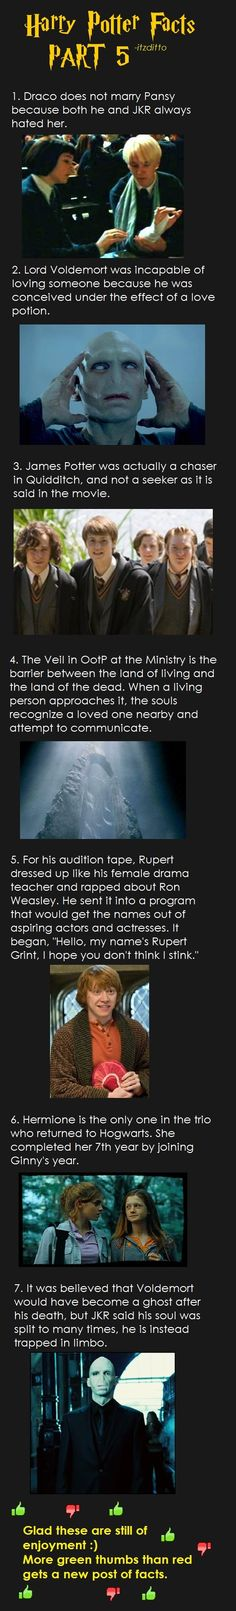 Harry Potter Facts 5